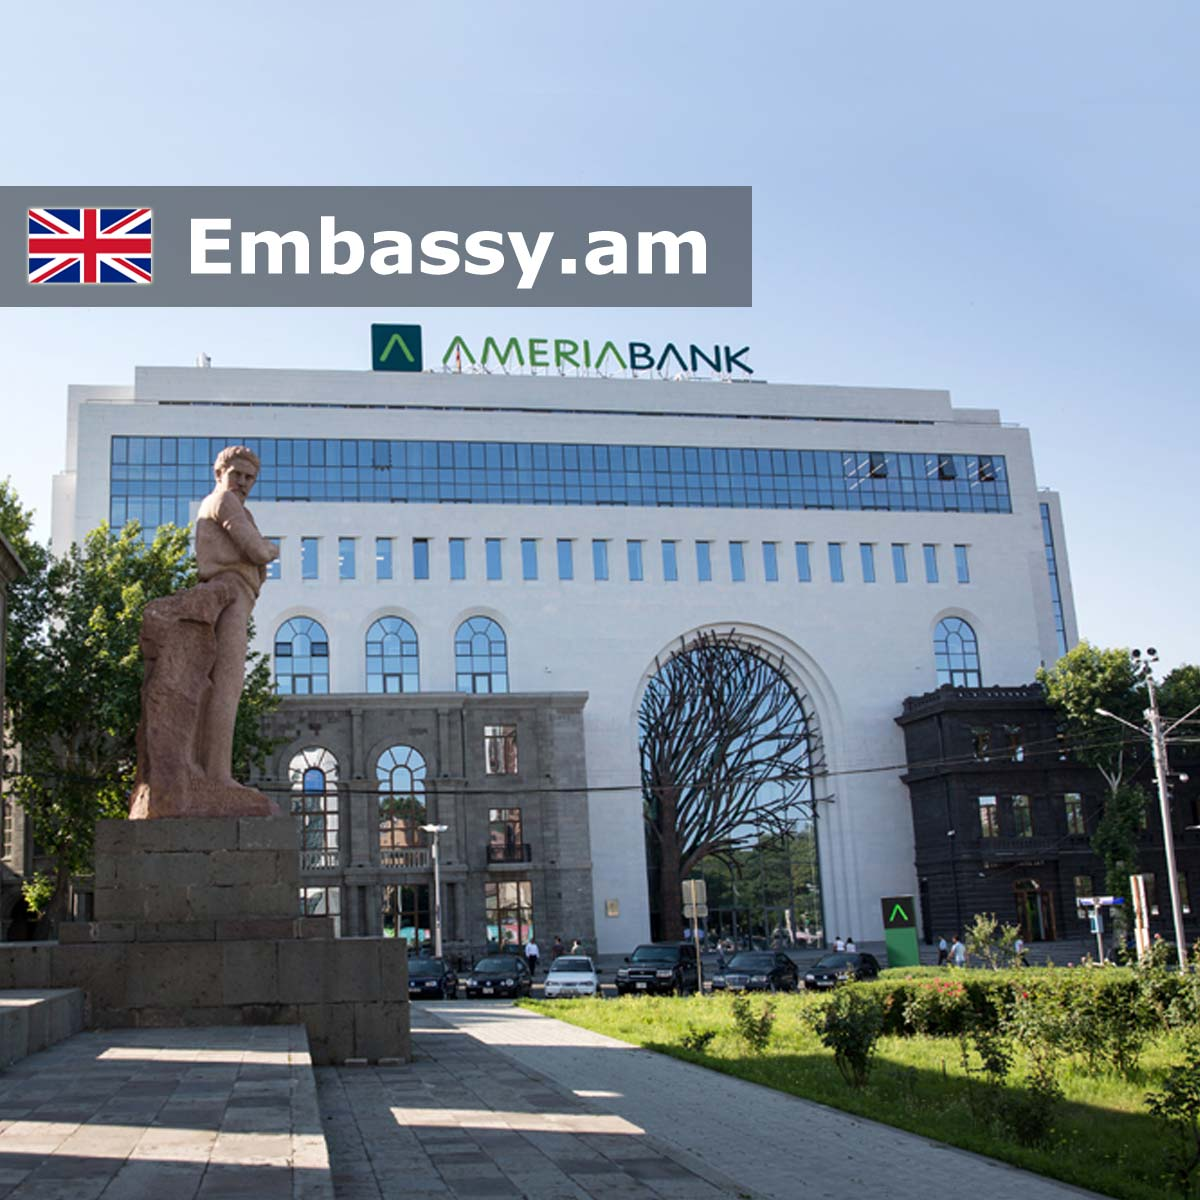 Embassy of UK in Armenia: www.embassy.am